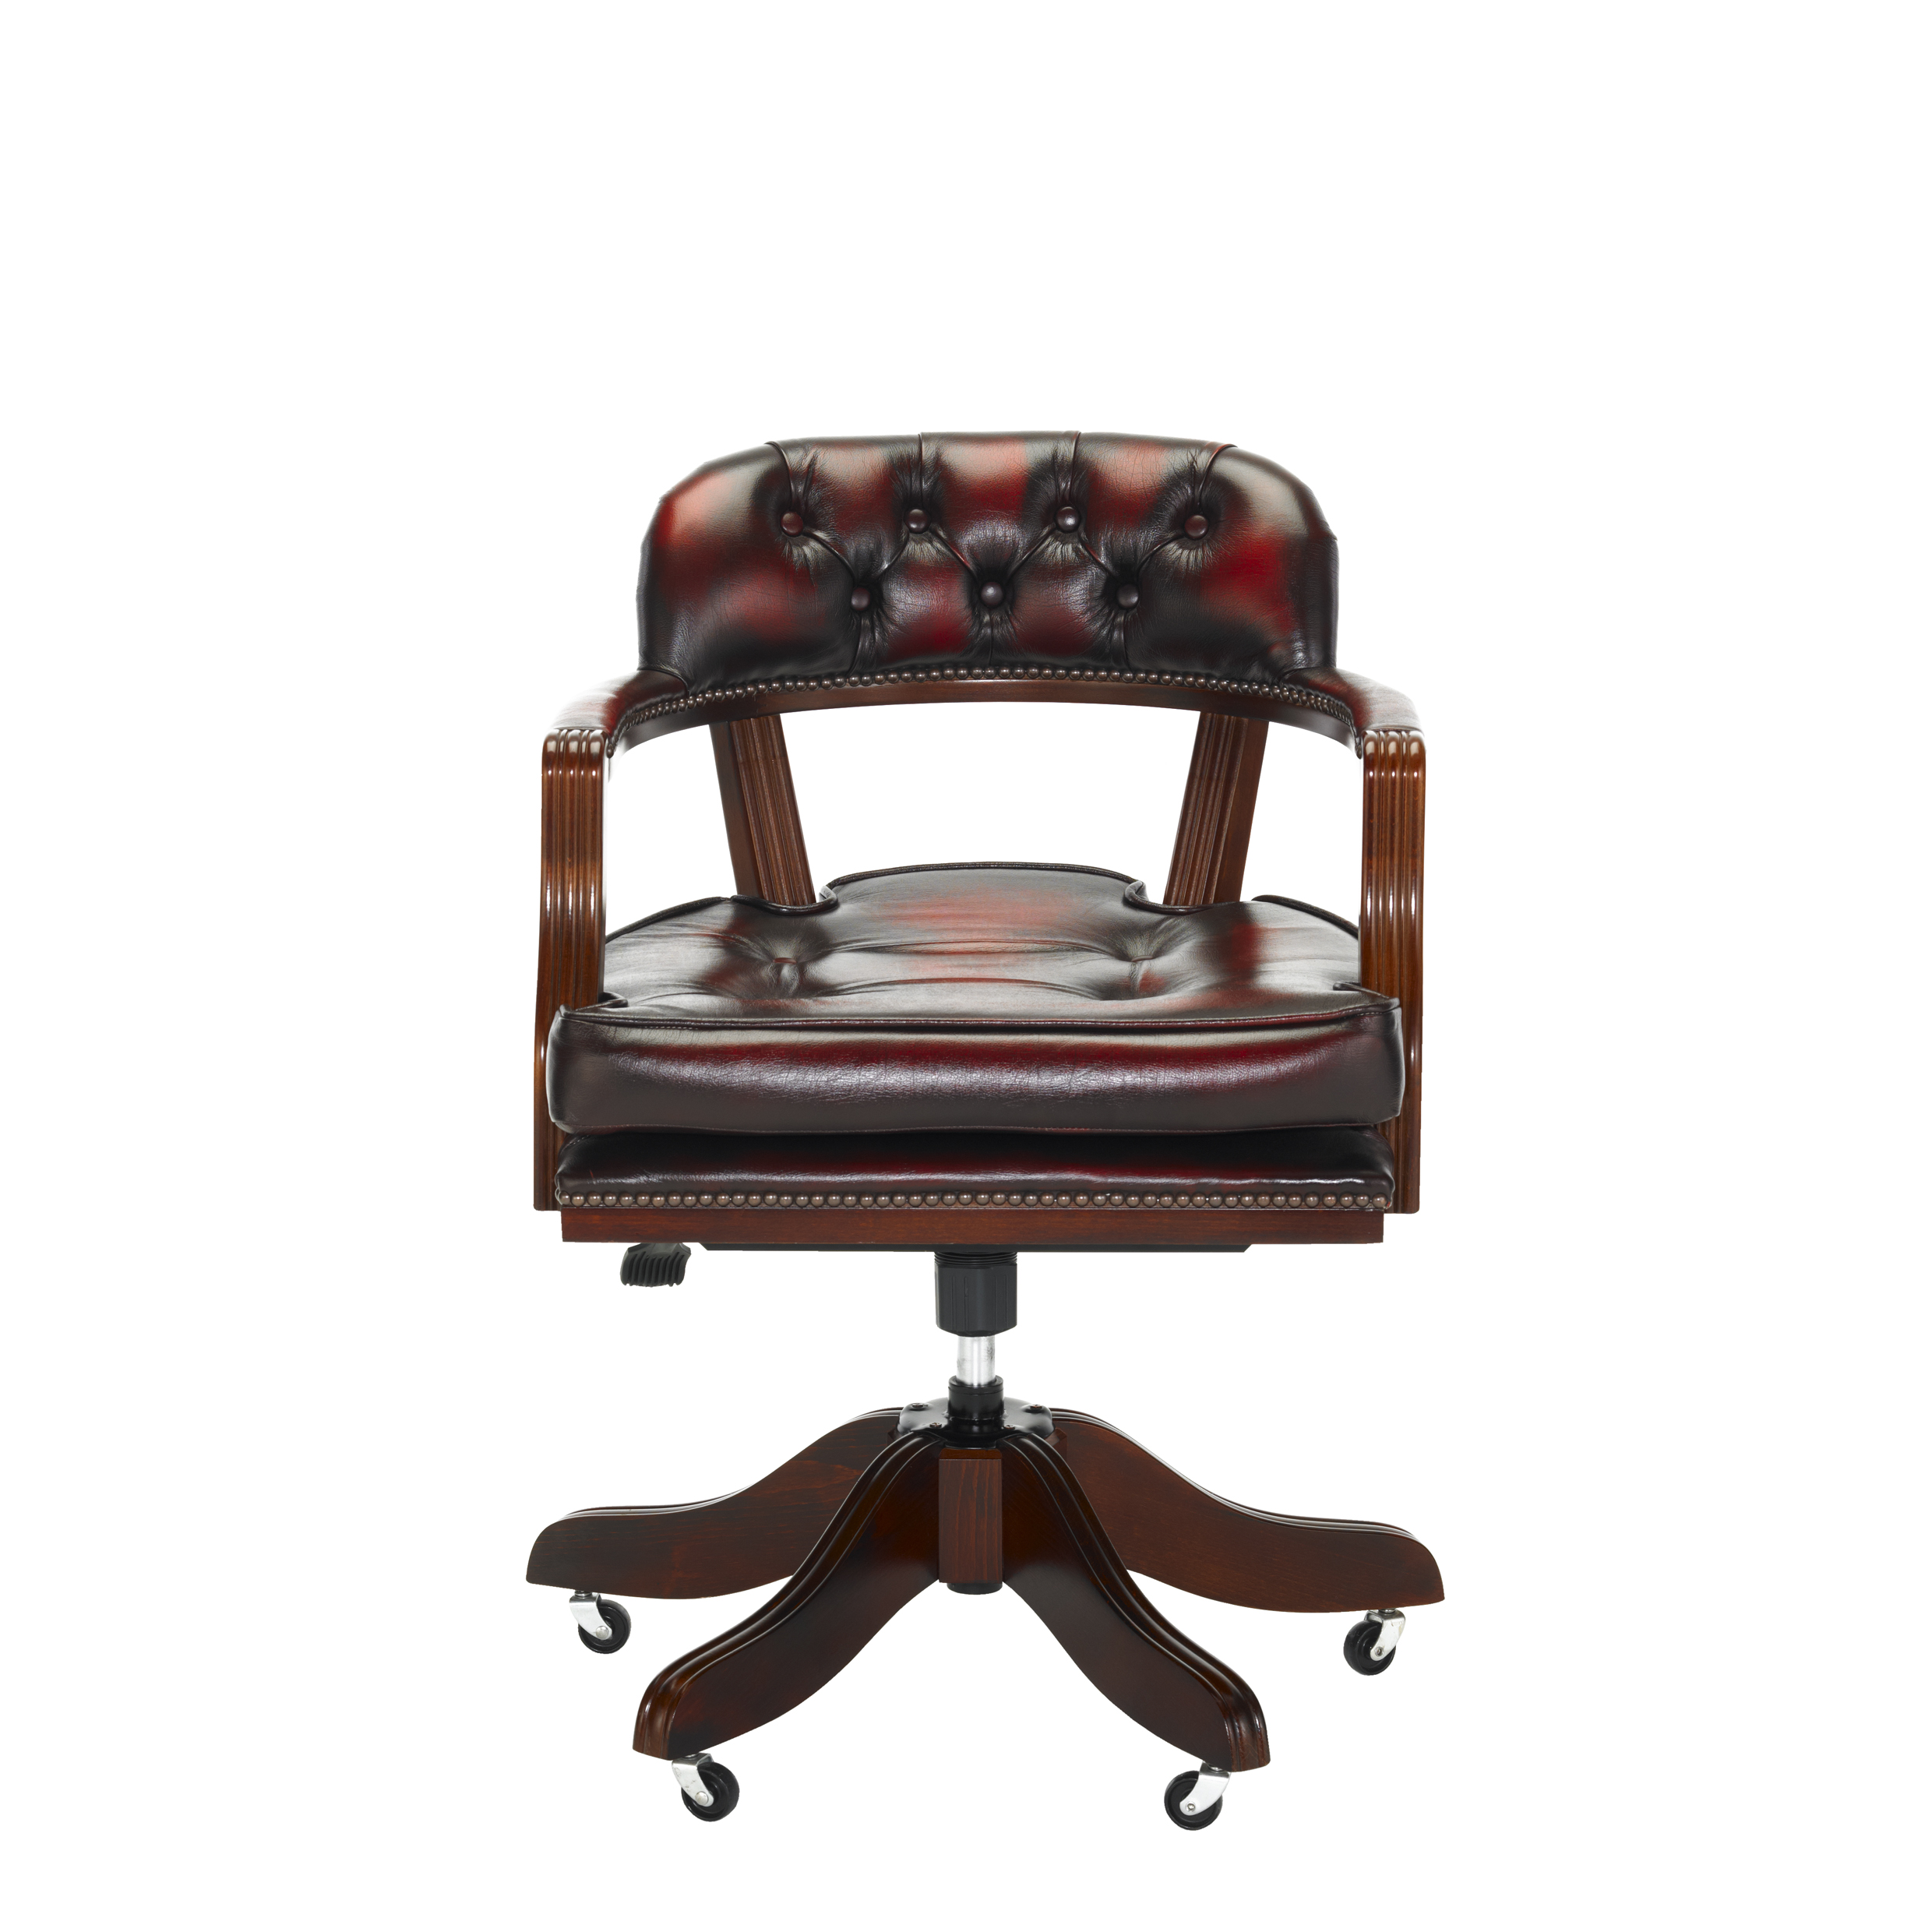 Court chair English Chesterfields